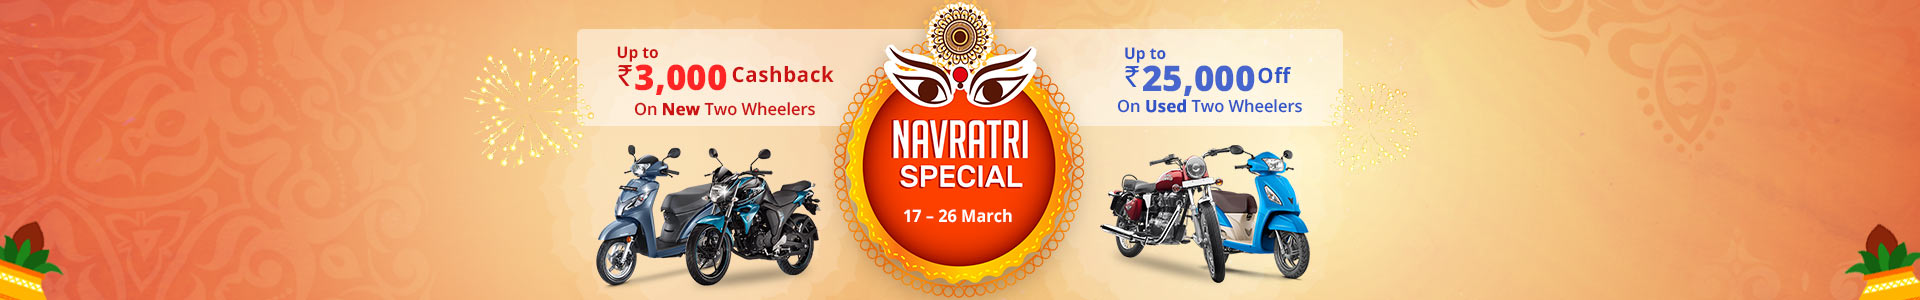 Navratri Special Offers on Vehicle